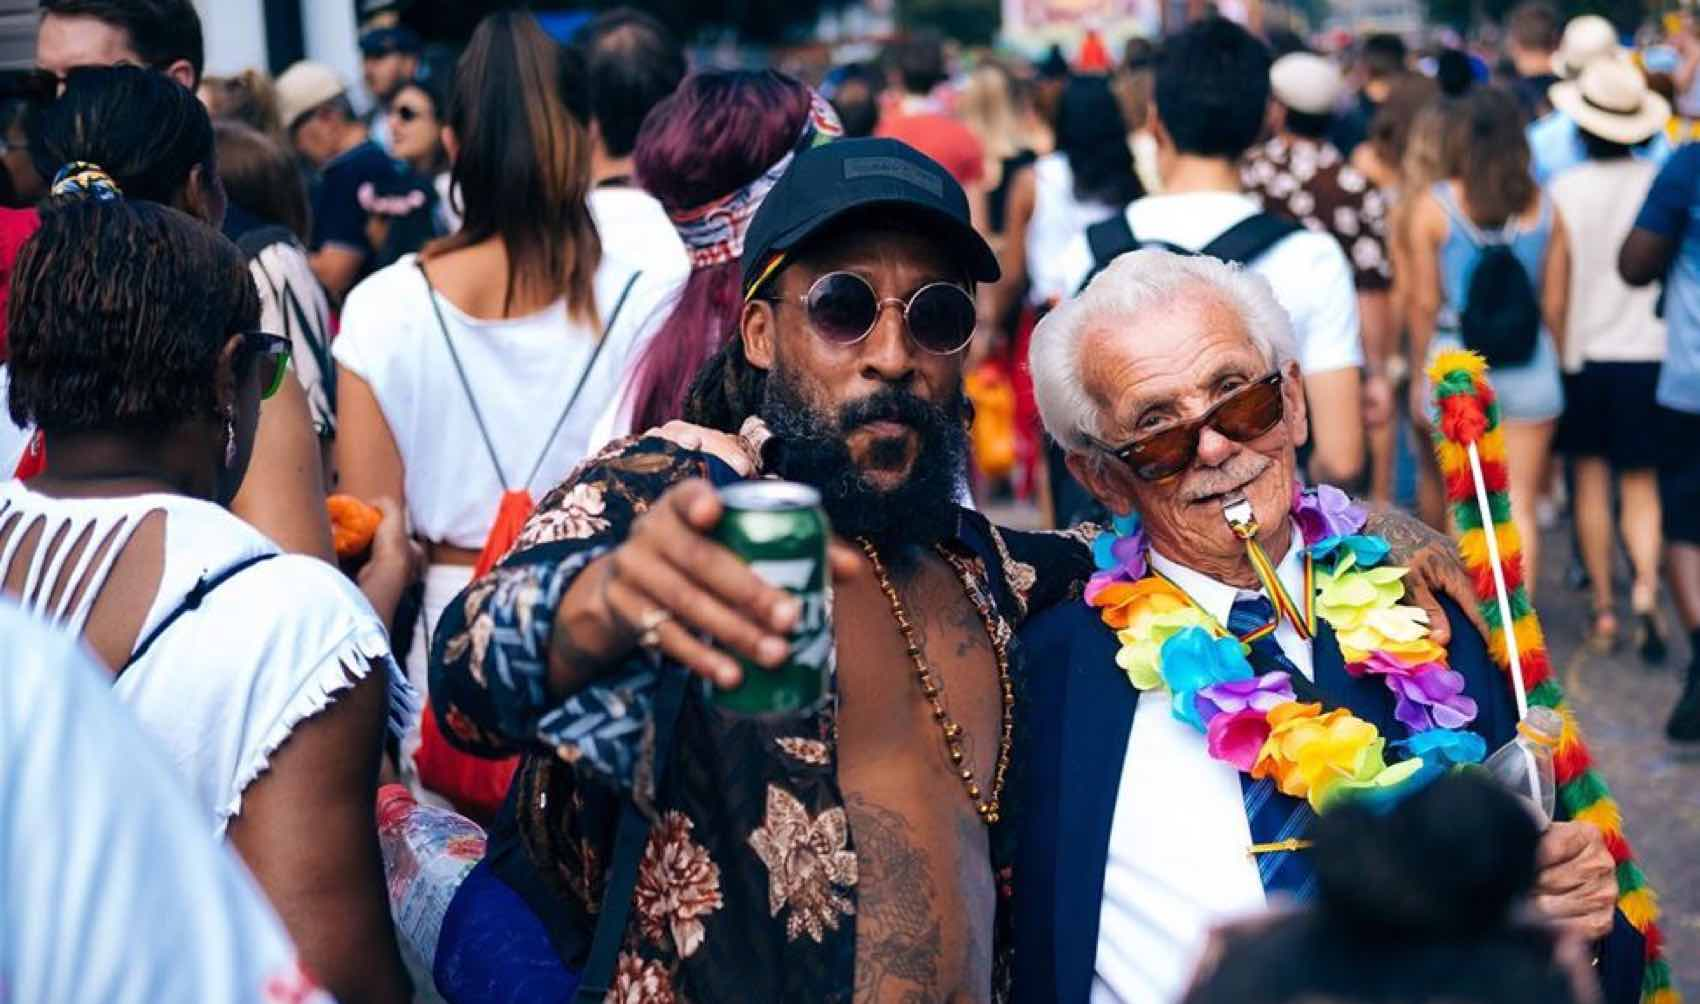 Fun at the Notting Hill Carnival